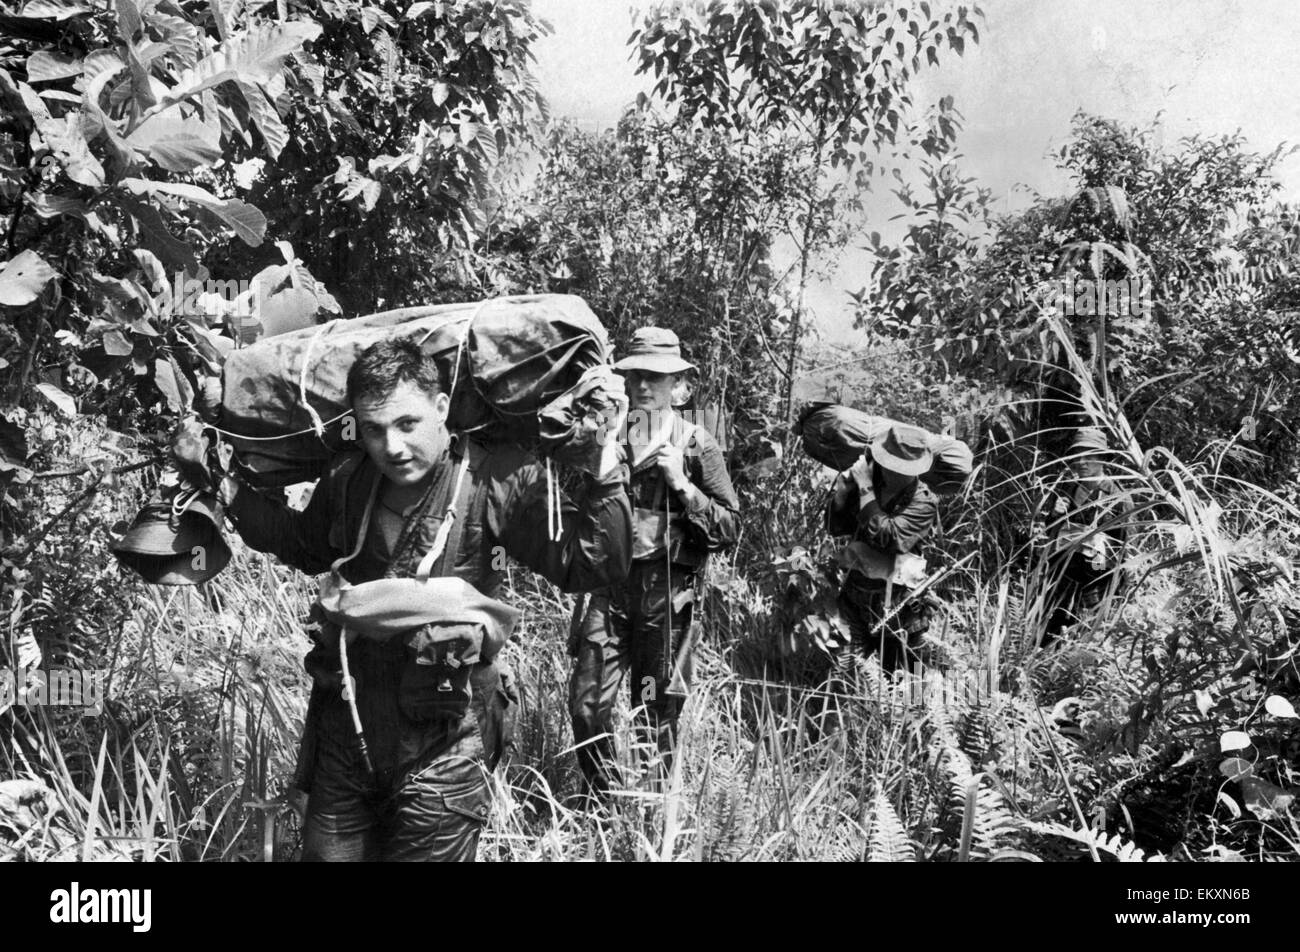 Emergency in Malaya. Soldiers of the British Army seen here on patrol in the Malayan Jungle following unrest. 17th - Stock Image